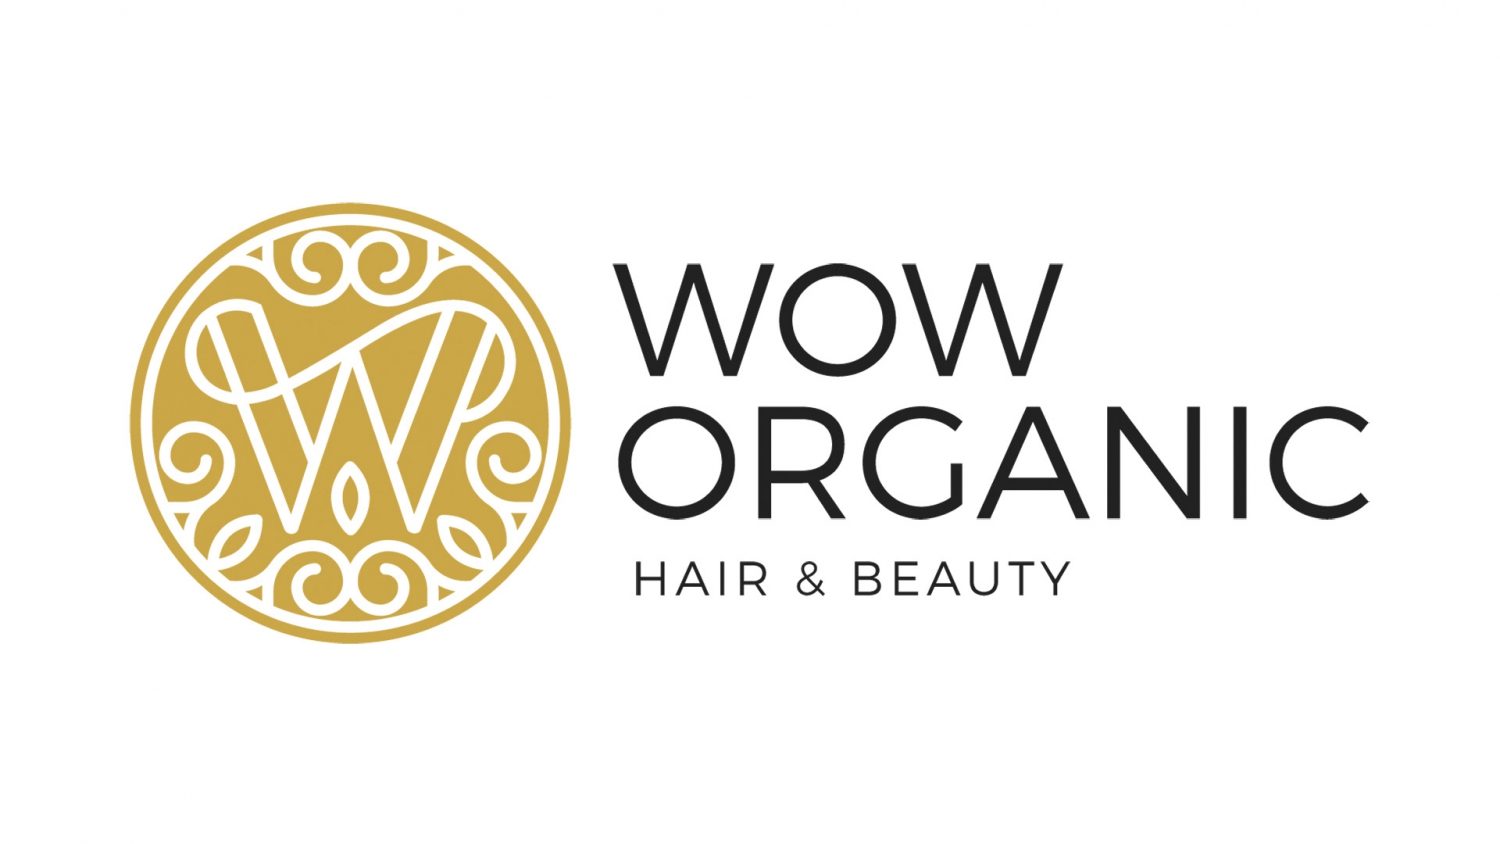 Be Wowed by the New Organic Hair and Beauty Salon at El Corte Ingles